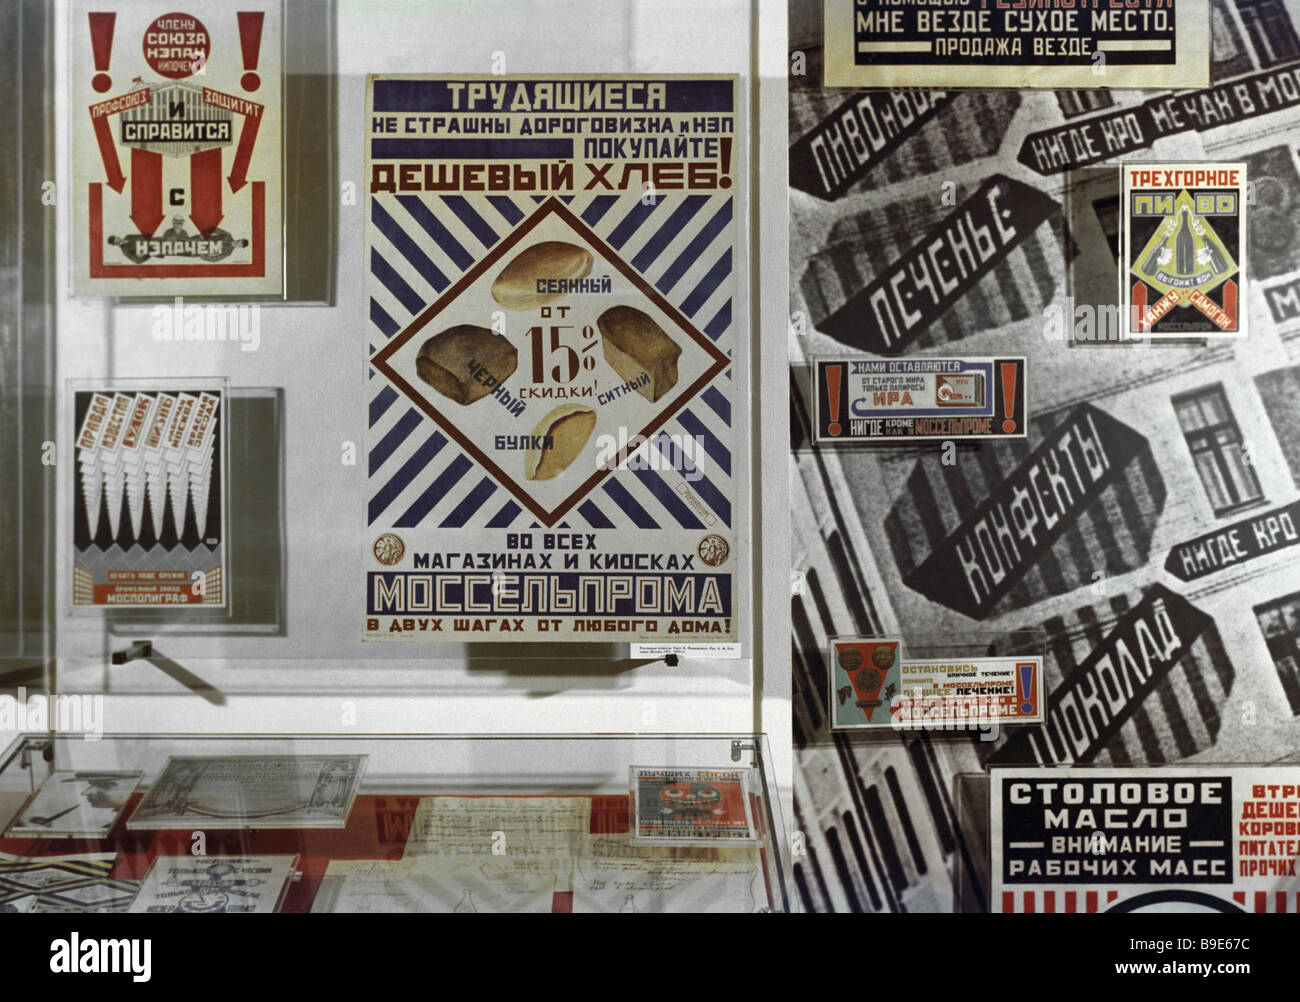 Poet Vladimir Mayakovsky s advertisements A stand in the Mayakovsky Museum - Stock Image